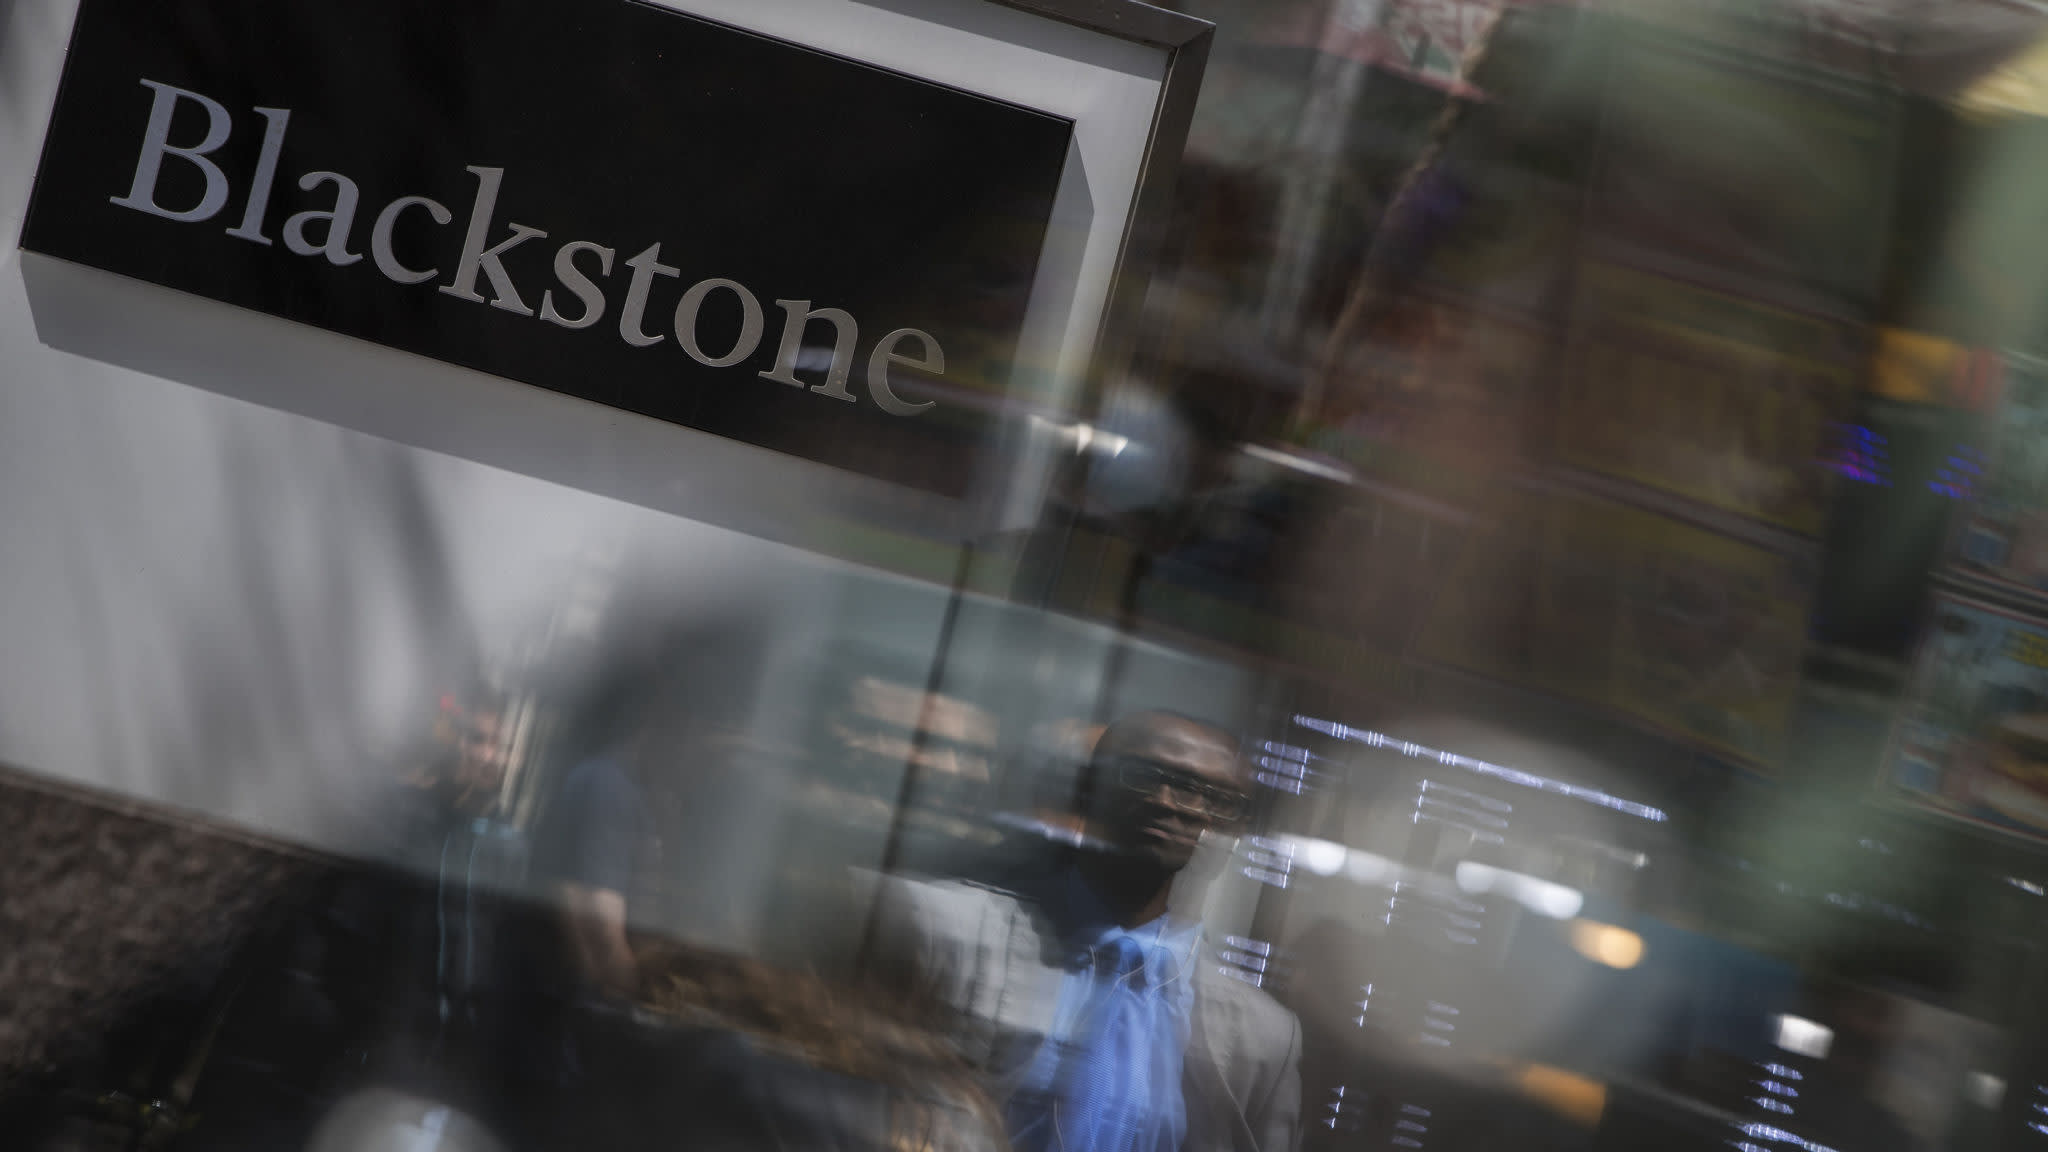 Blackstone garners record capital inflows in private equity boom